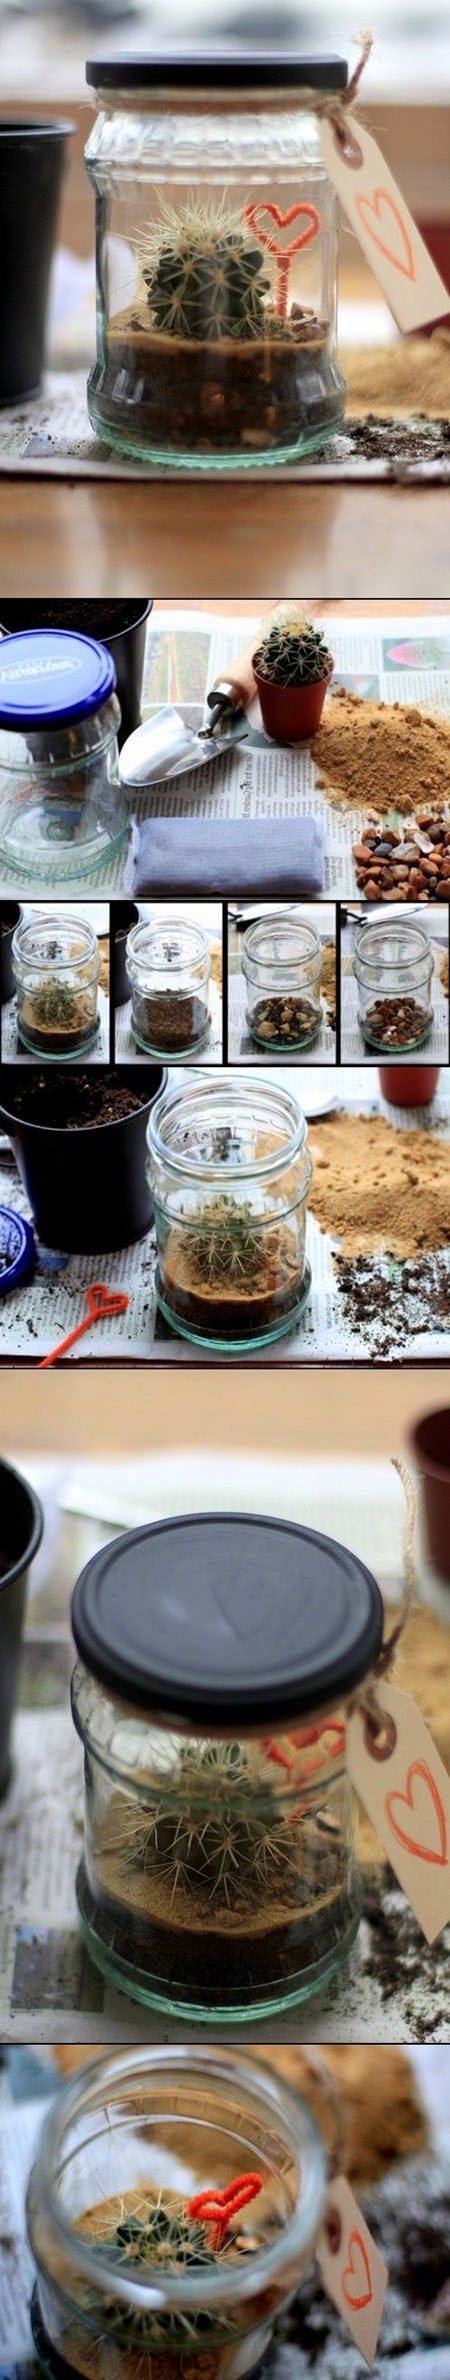 15  DIY Terrarium ideas b45a5